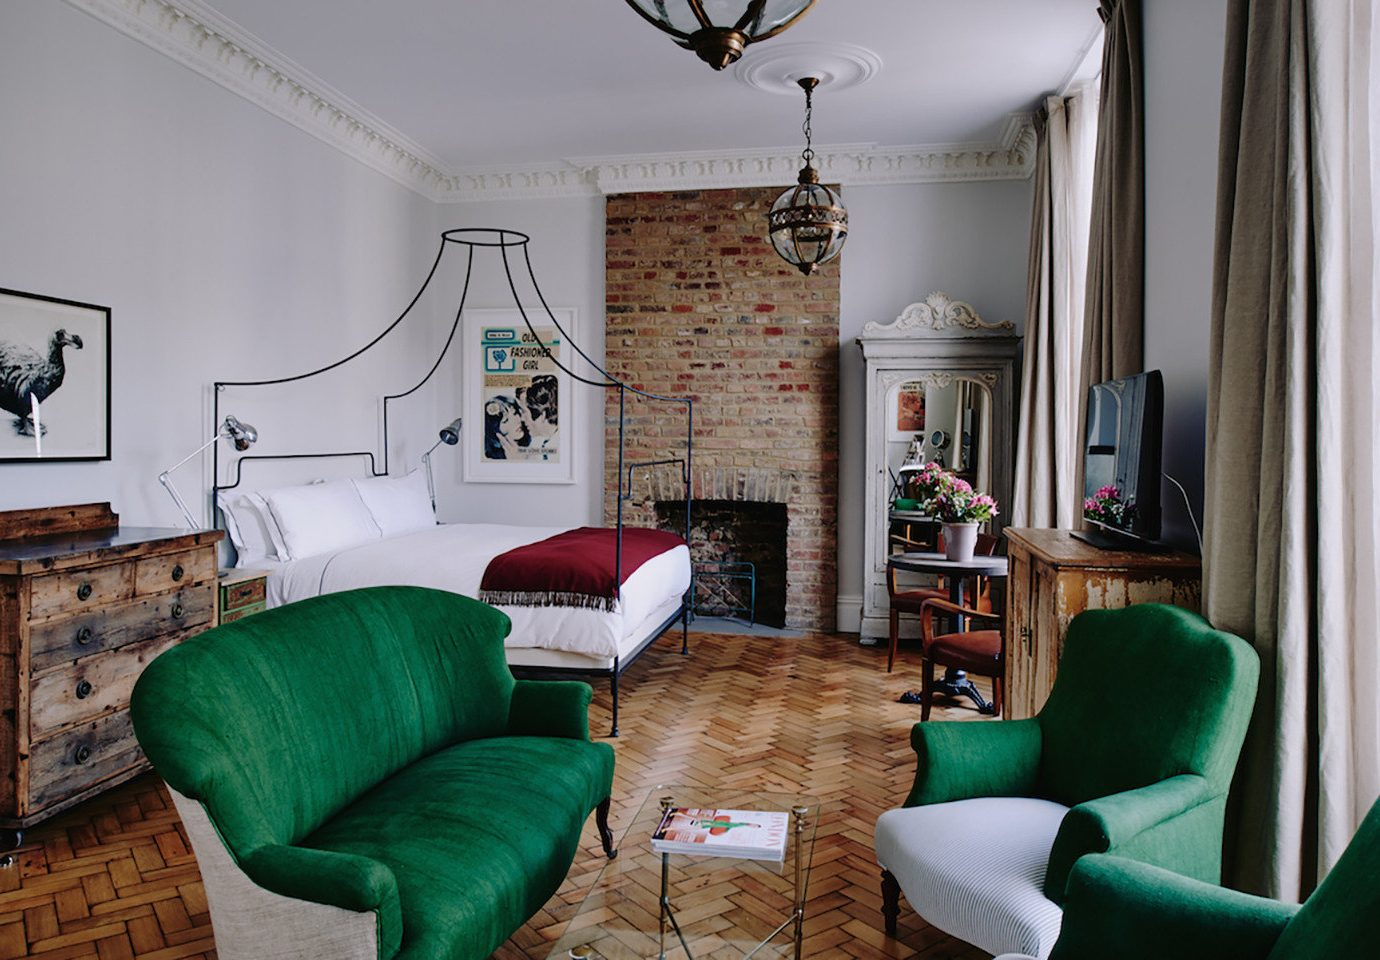 Boutique Hotels Hotels Living sofa indoor room wall floor green chair living room interior design furniture home real estate leather Suite house ceiling estate interior designer rug table area decorated